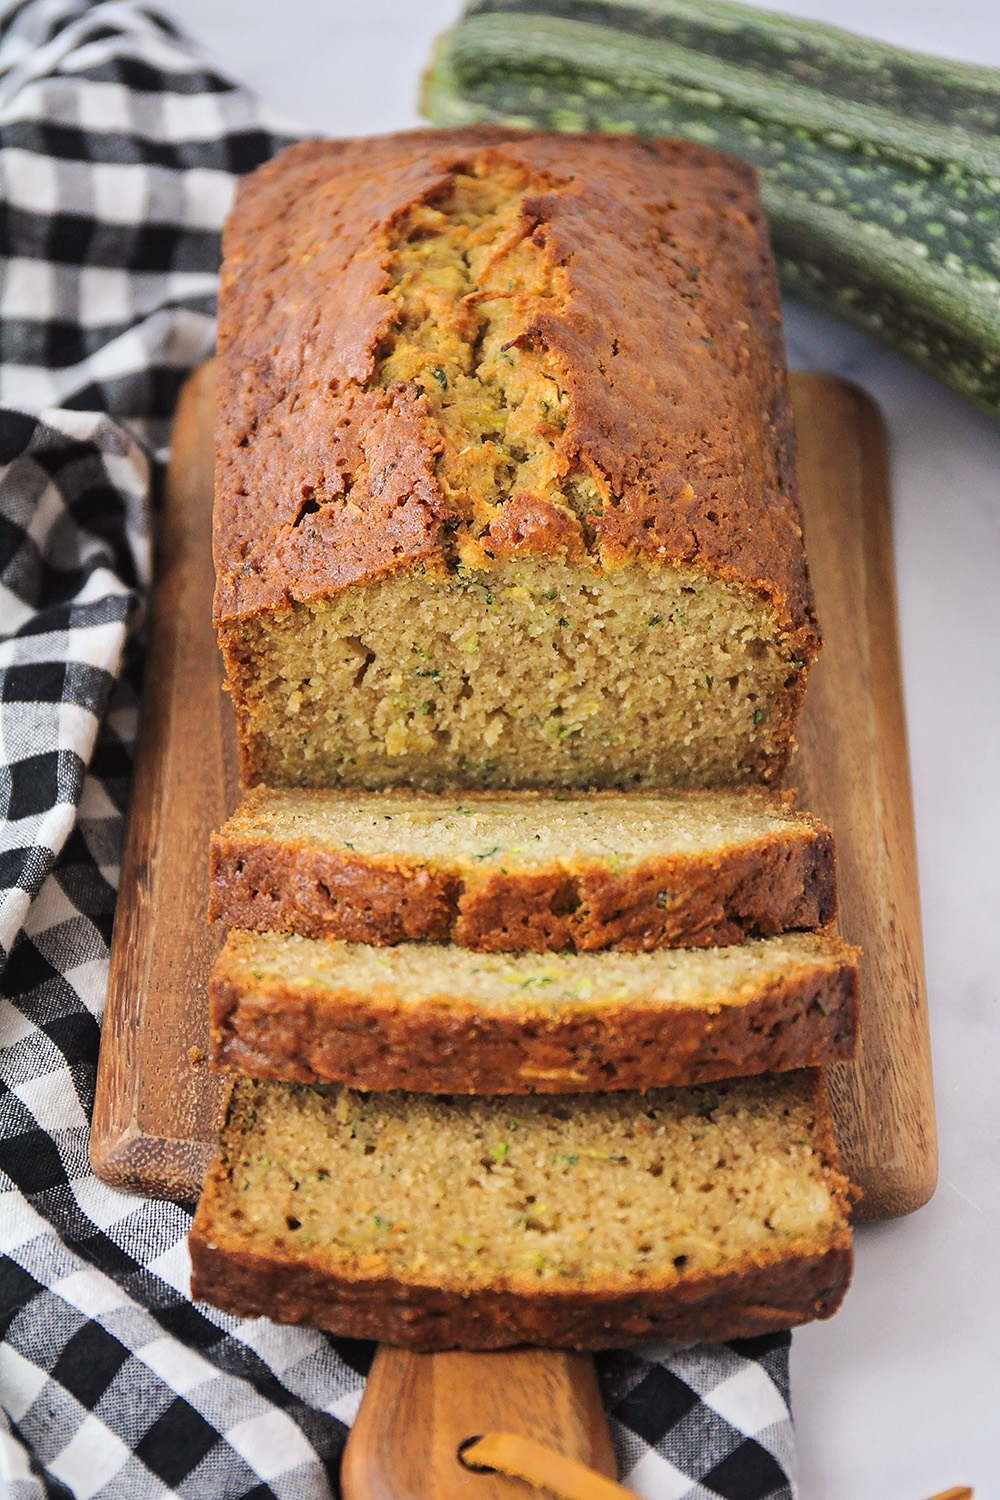 This delicious homemade zucchini bread is so tender and moist, with the perfect amount of sweetness!